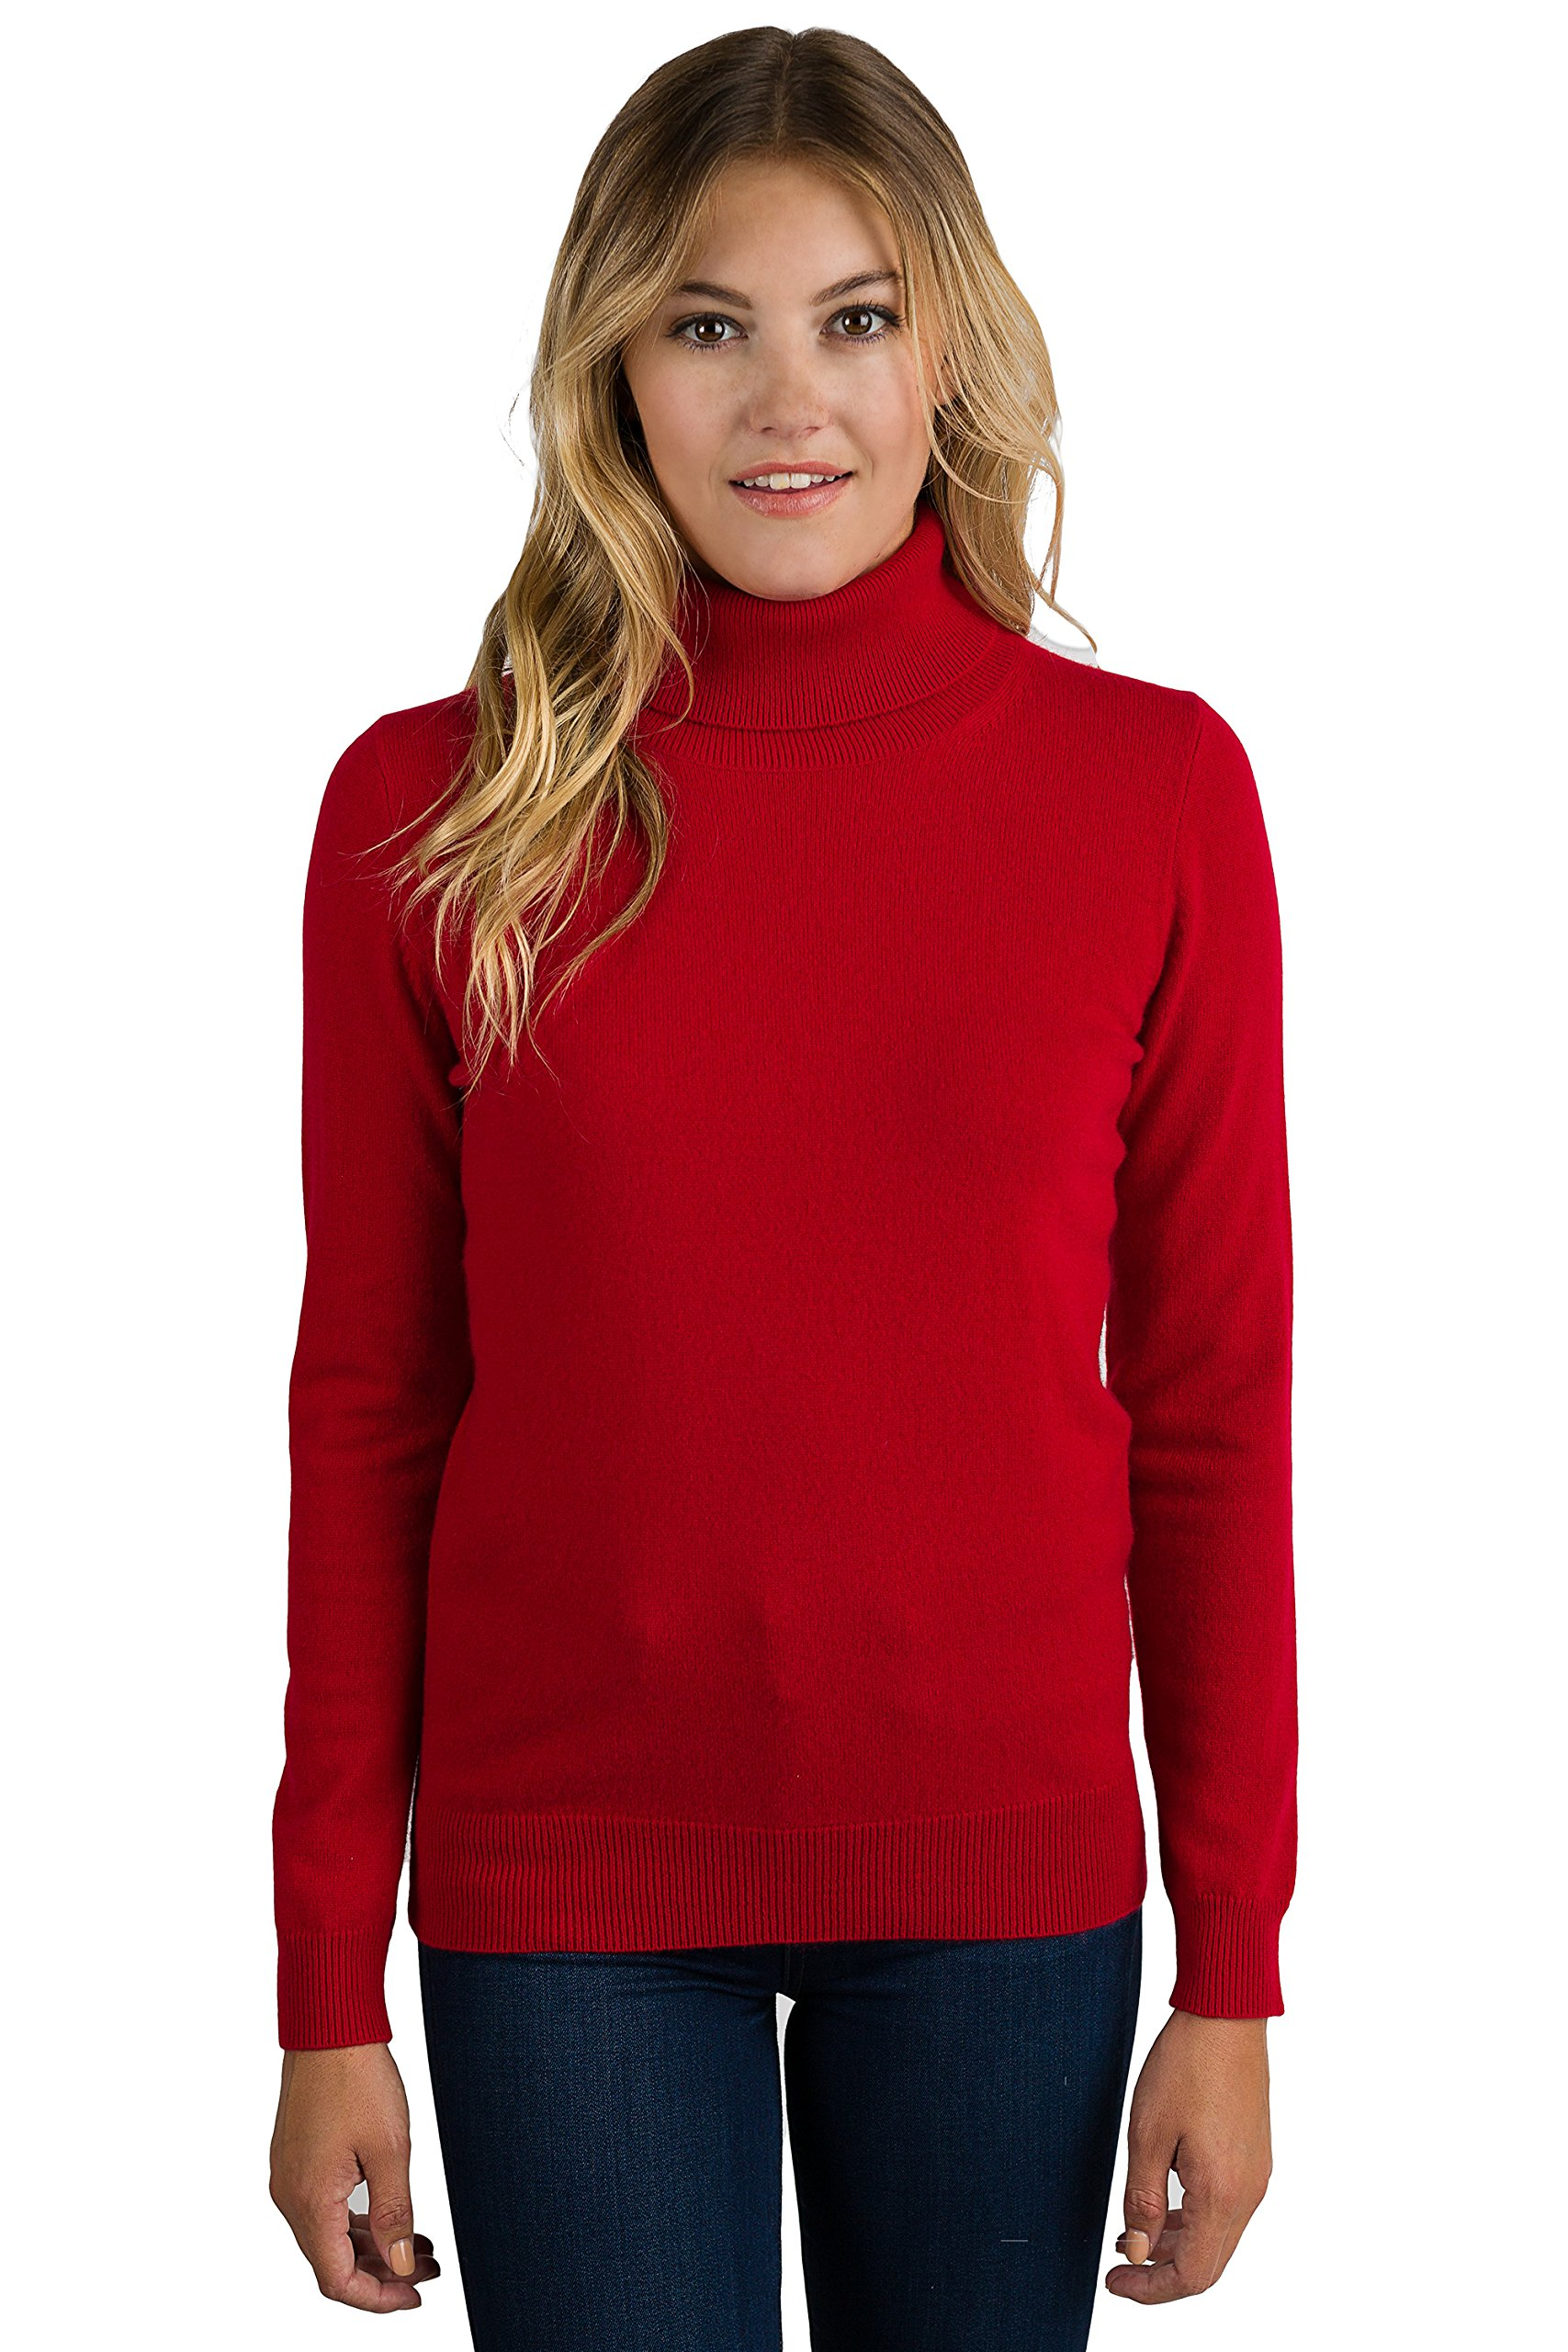 JENNIE LIU Women's 100% Pure Cashmere Long Sleeve Pullover Turtleneck Sweater (PS, Red)